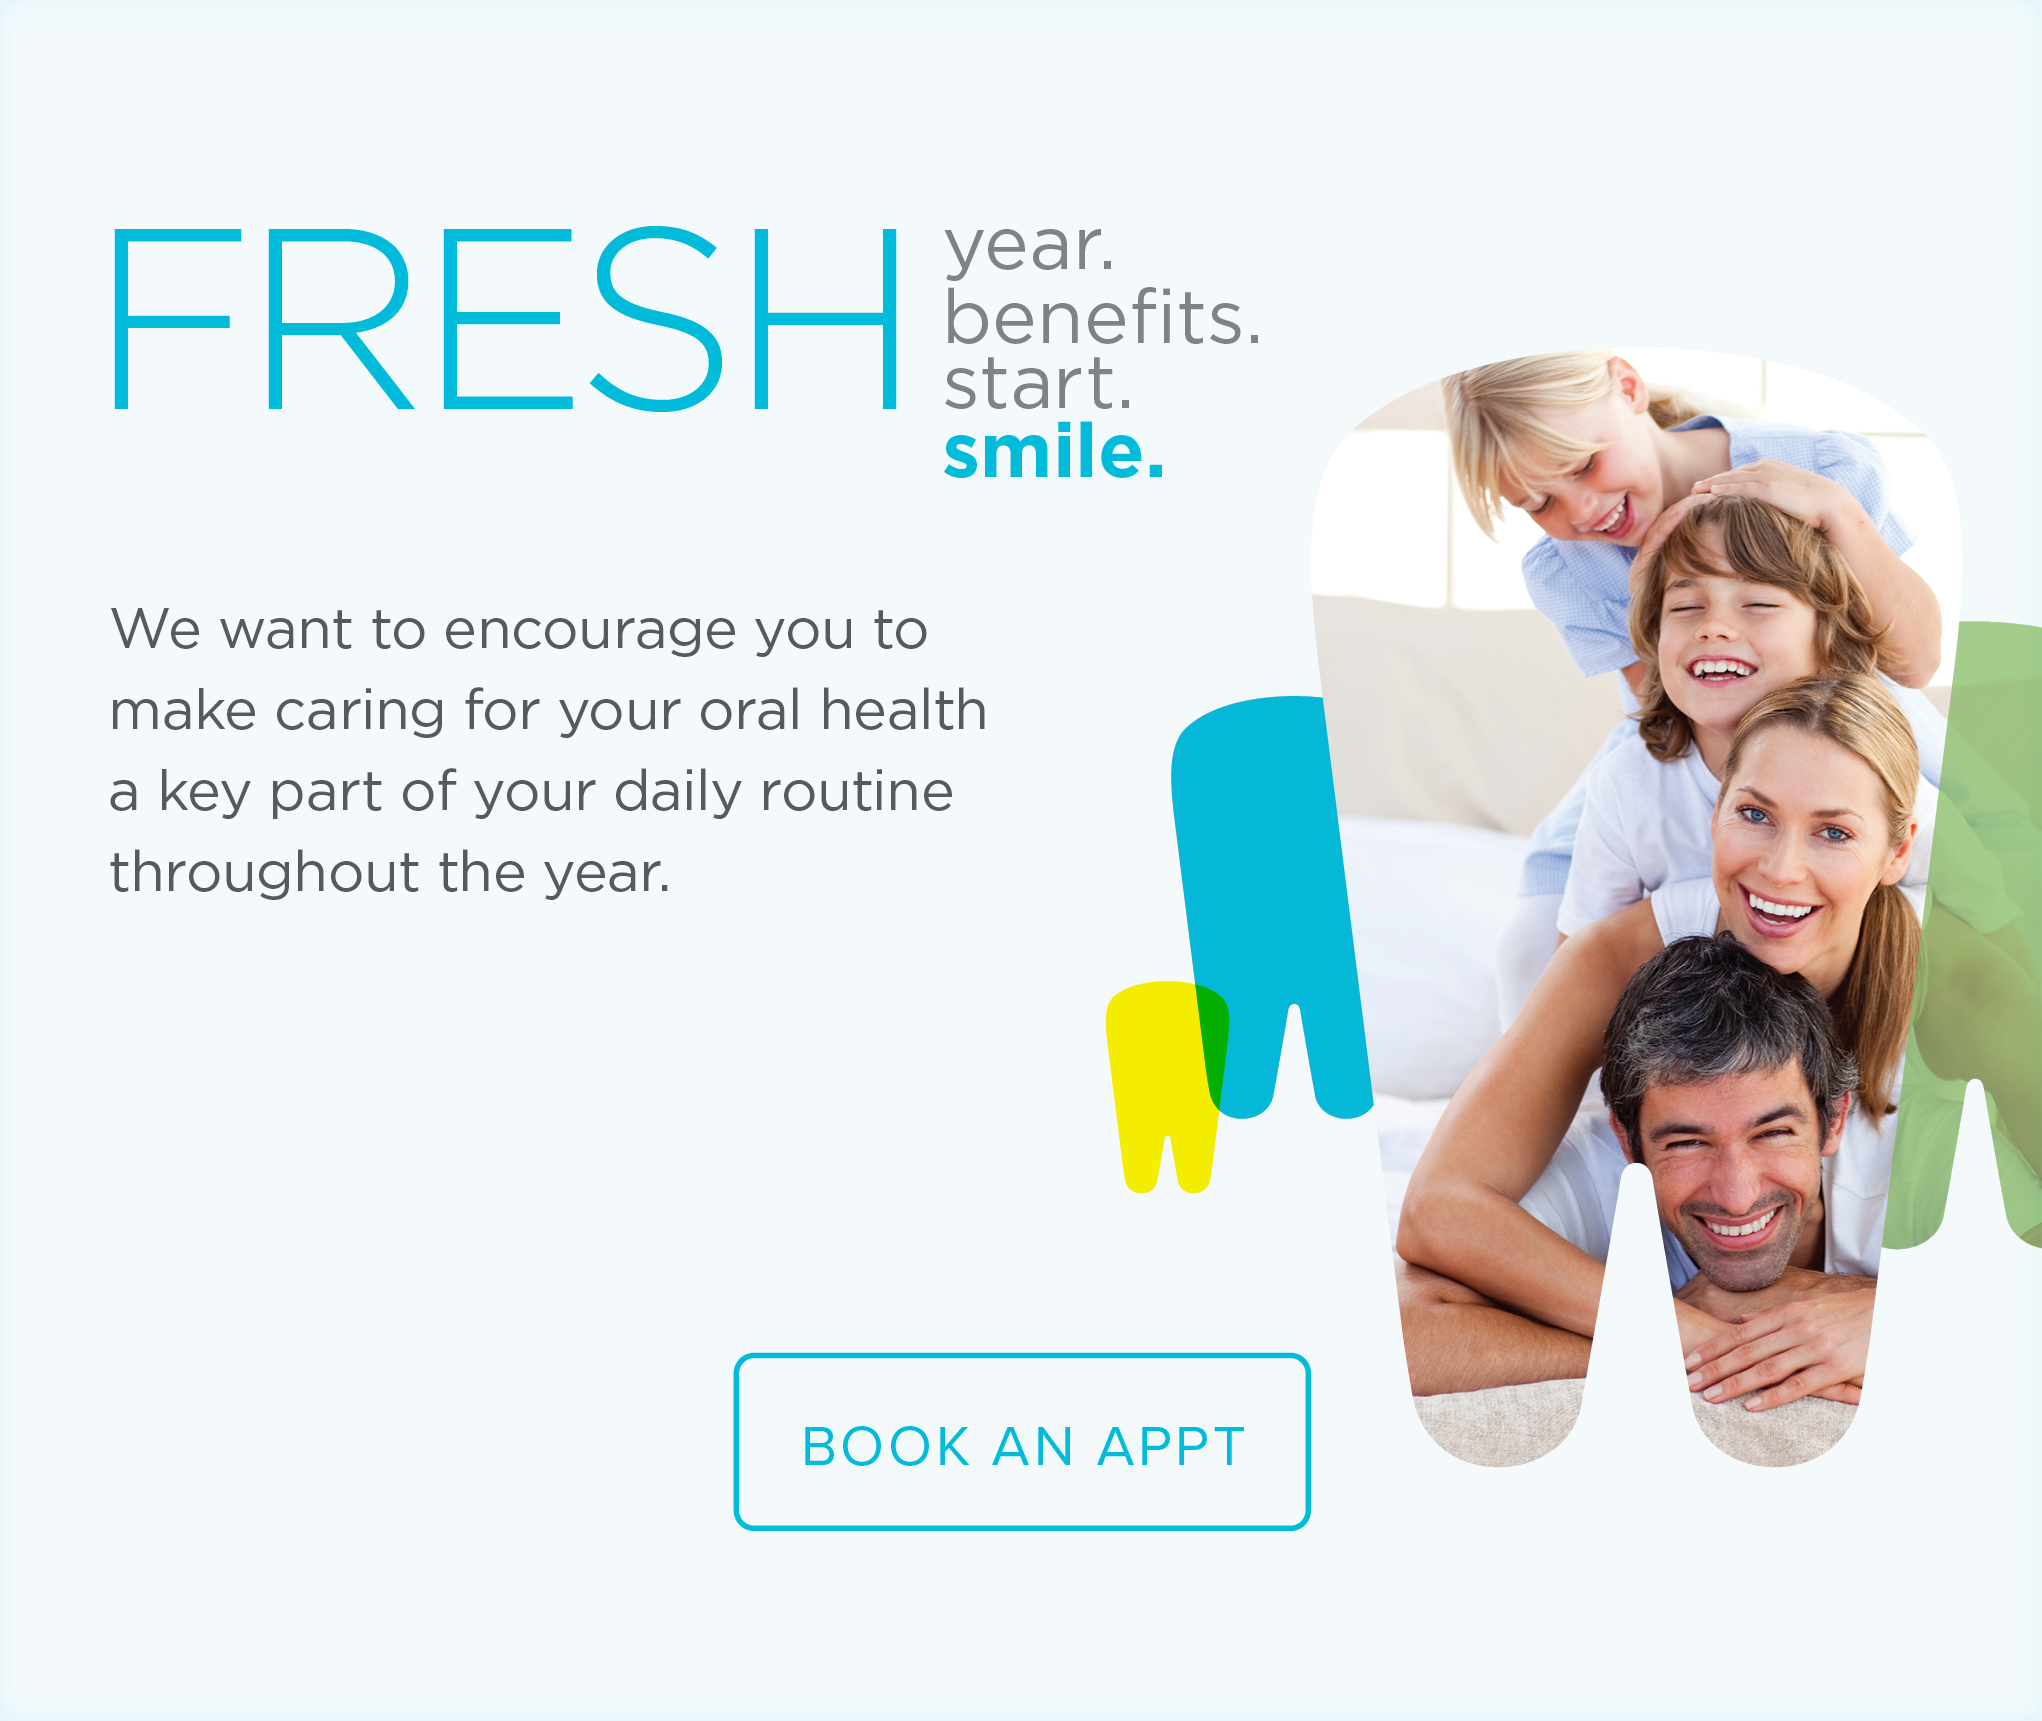 South Corona Dental Group - Make the Most of Your Benefits